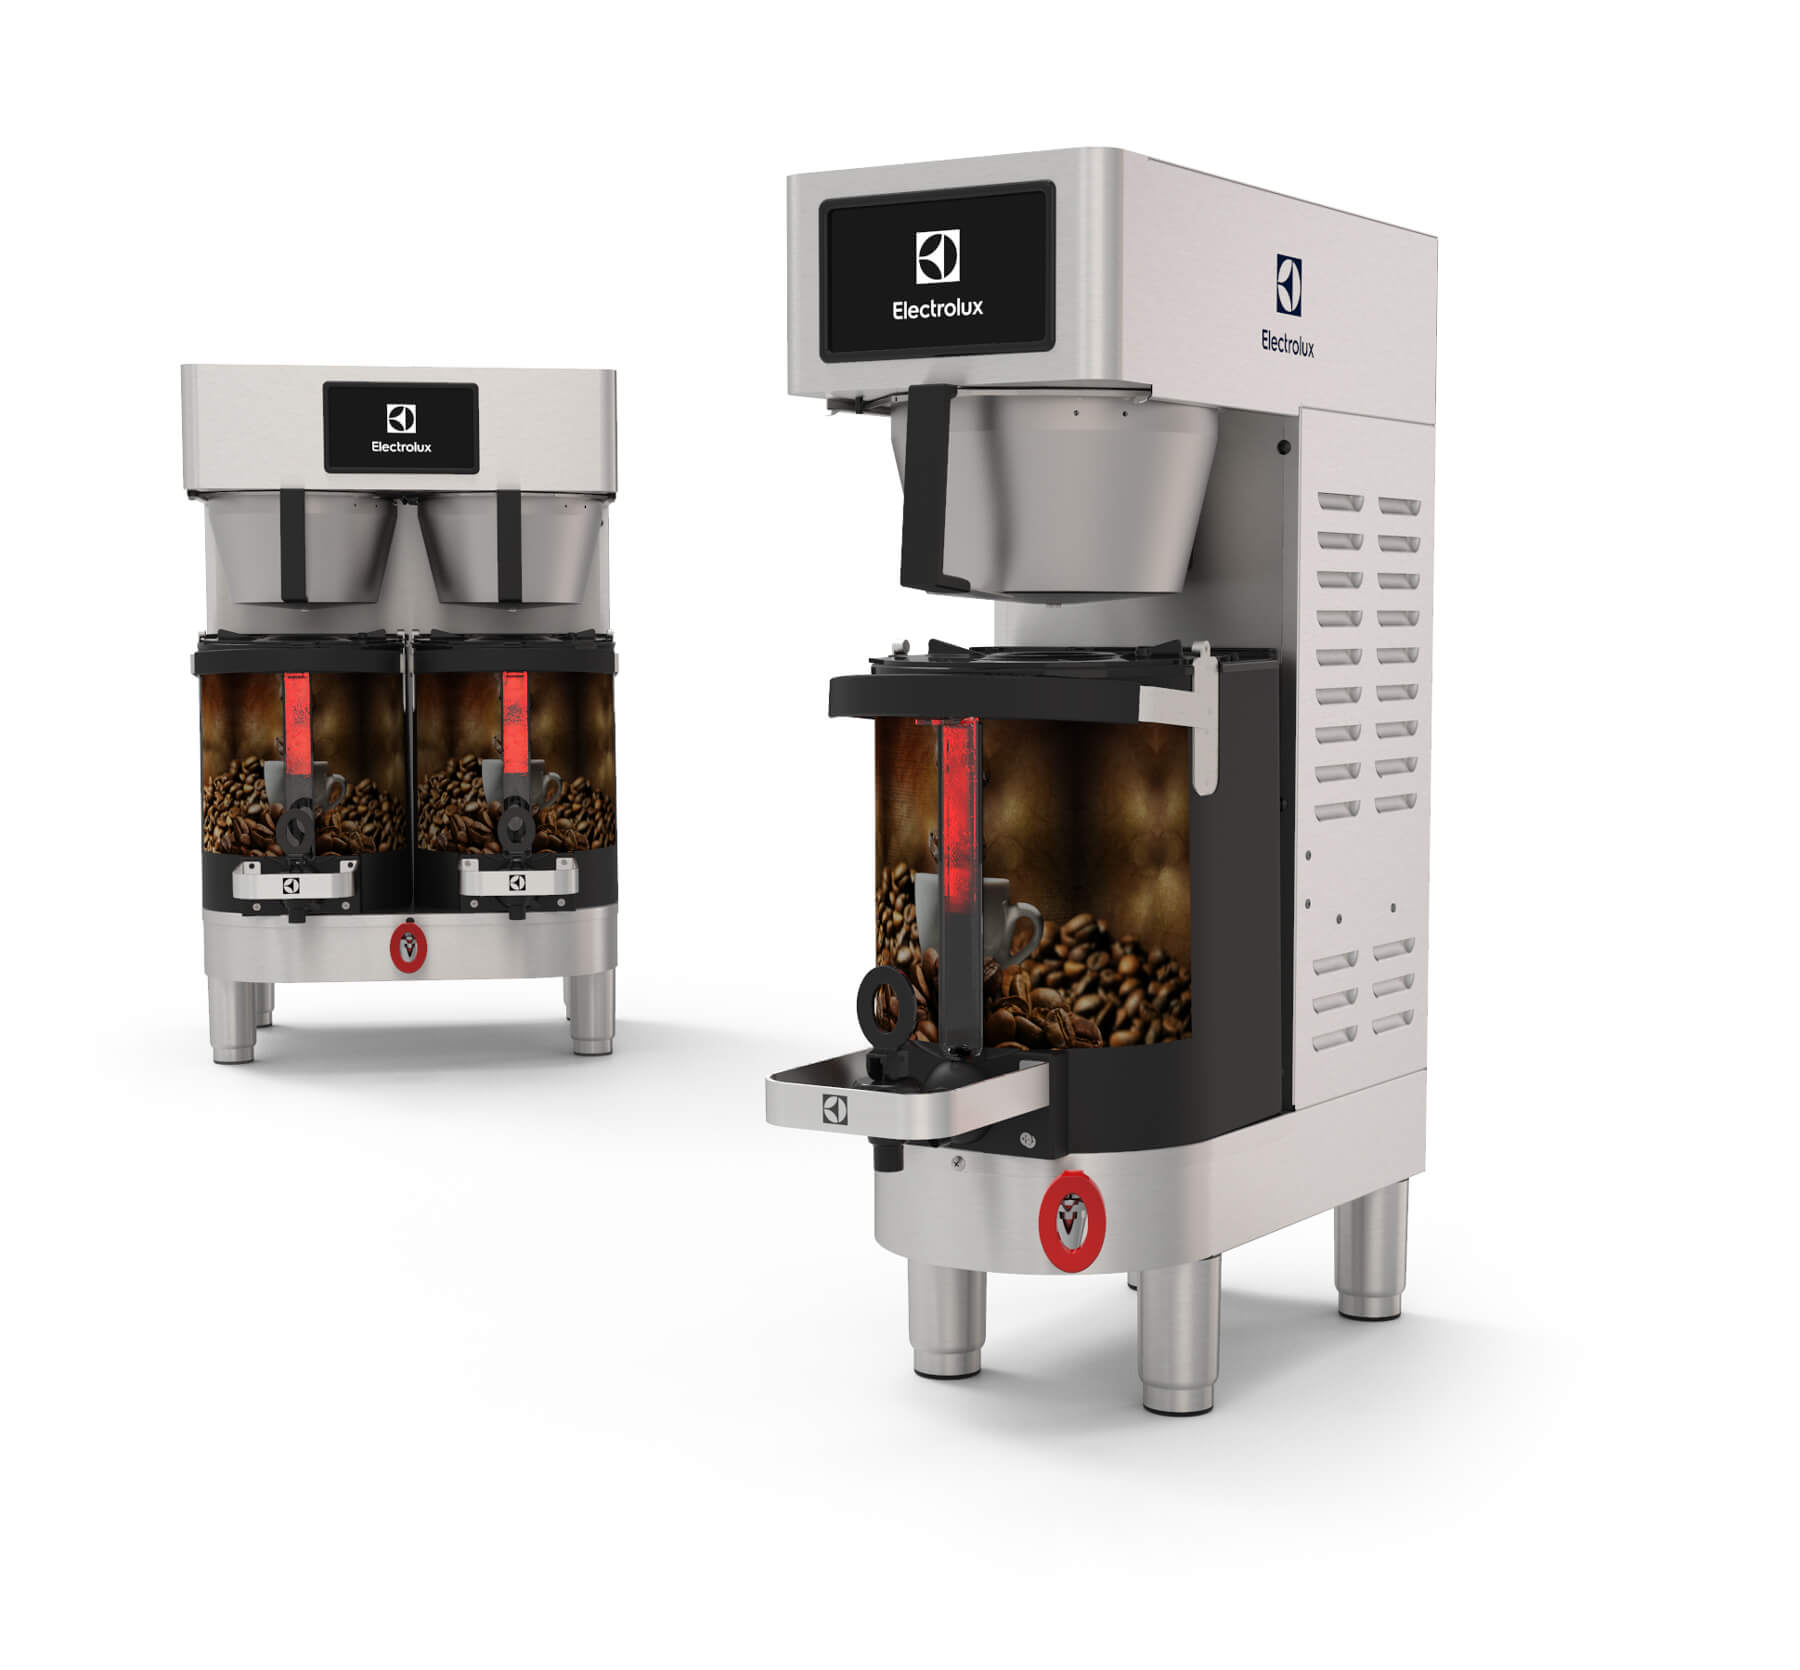 Electrolux PrecisionBrew 3D Product Renders